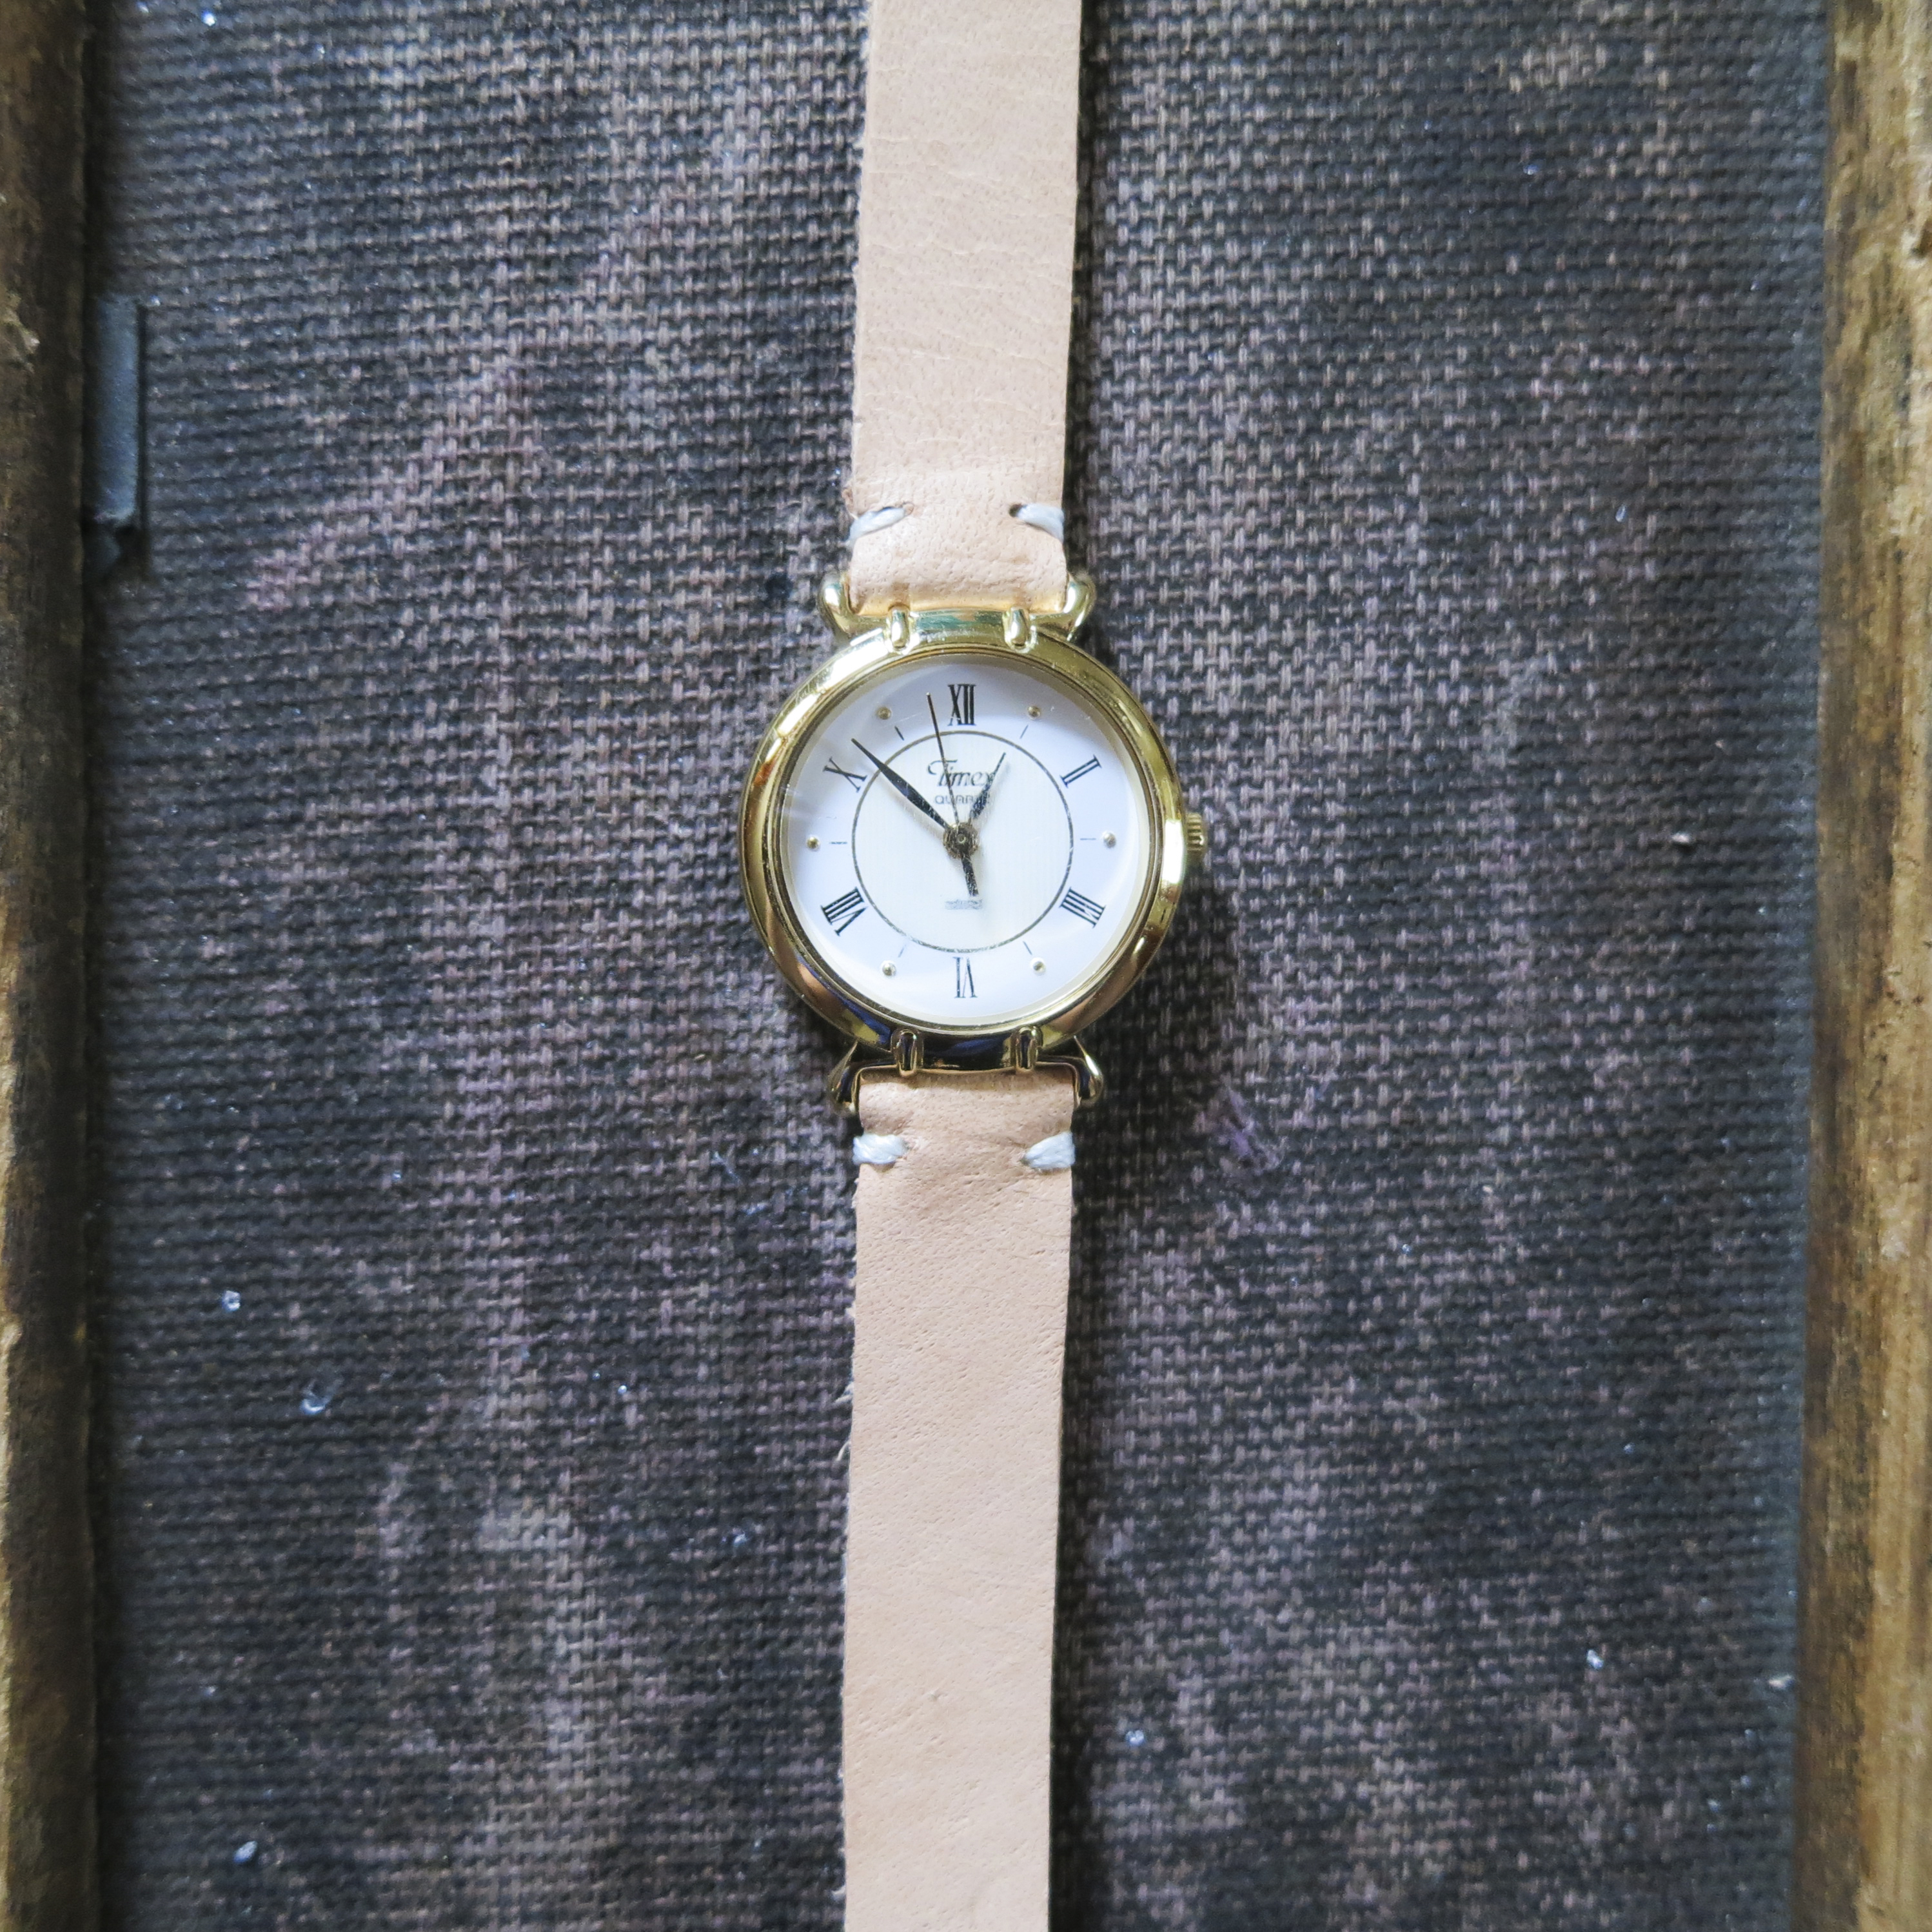 Re Purposed Vintage Wrap Watch with Veg. Leather Strap – $80